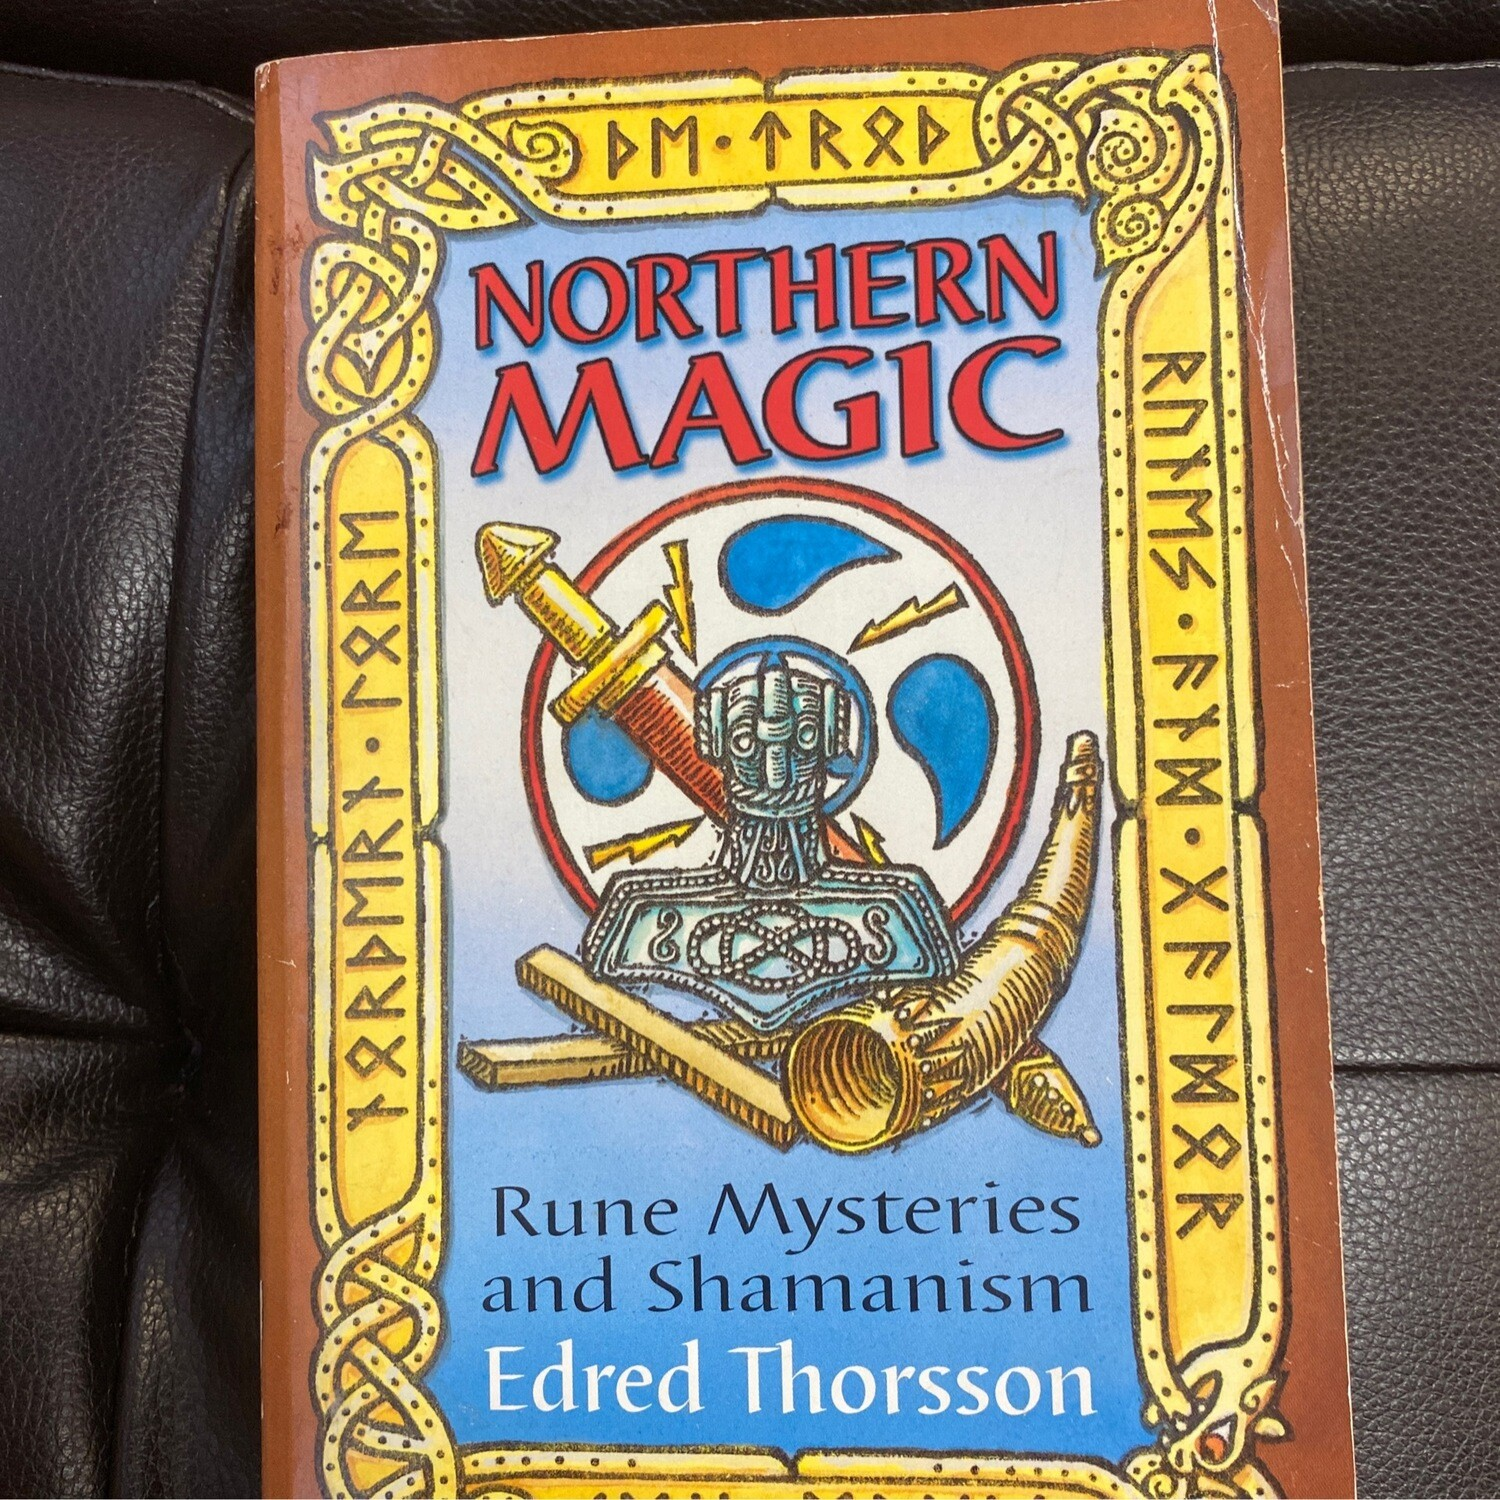 Northern Magic Rune Mysteries and Shamanism by Edred Thorsson